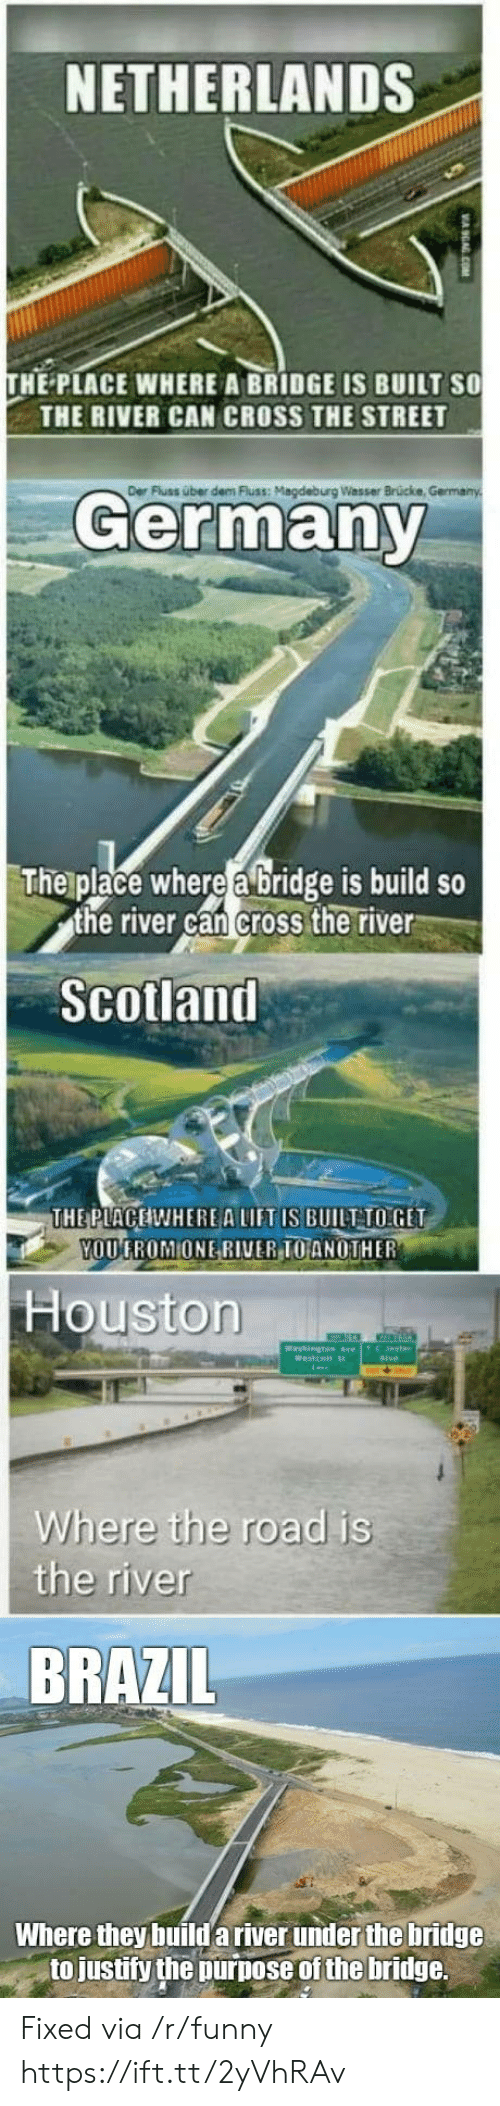 Funny, Uber, and Brazil: NETHERLANDS  HE PLACE WHERE A BRIDGE IS BUILT SO  THE RIVER CAN CROSS THE STREET  Der  Fluss über dem luss: Magdeburg Wasser Brücke  Germany  The place where a bridge is build so  the river can cross the river  Scolland  THE PLACEIWHEREA LIFT IS BUILT TO:GET  OUGROMIONE RI  VERIOANOTHER  Houstorn  Where the road is  the river  BRAZIL  Where they build a river under the bridge  to justify the purpose of the bridge. Fixed via /r/funny https://ift.tt/2yVhRAv